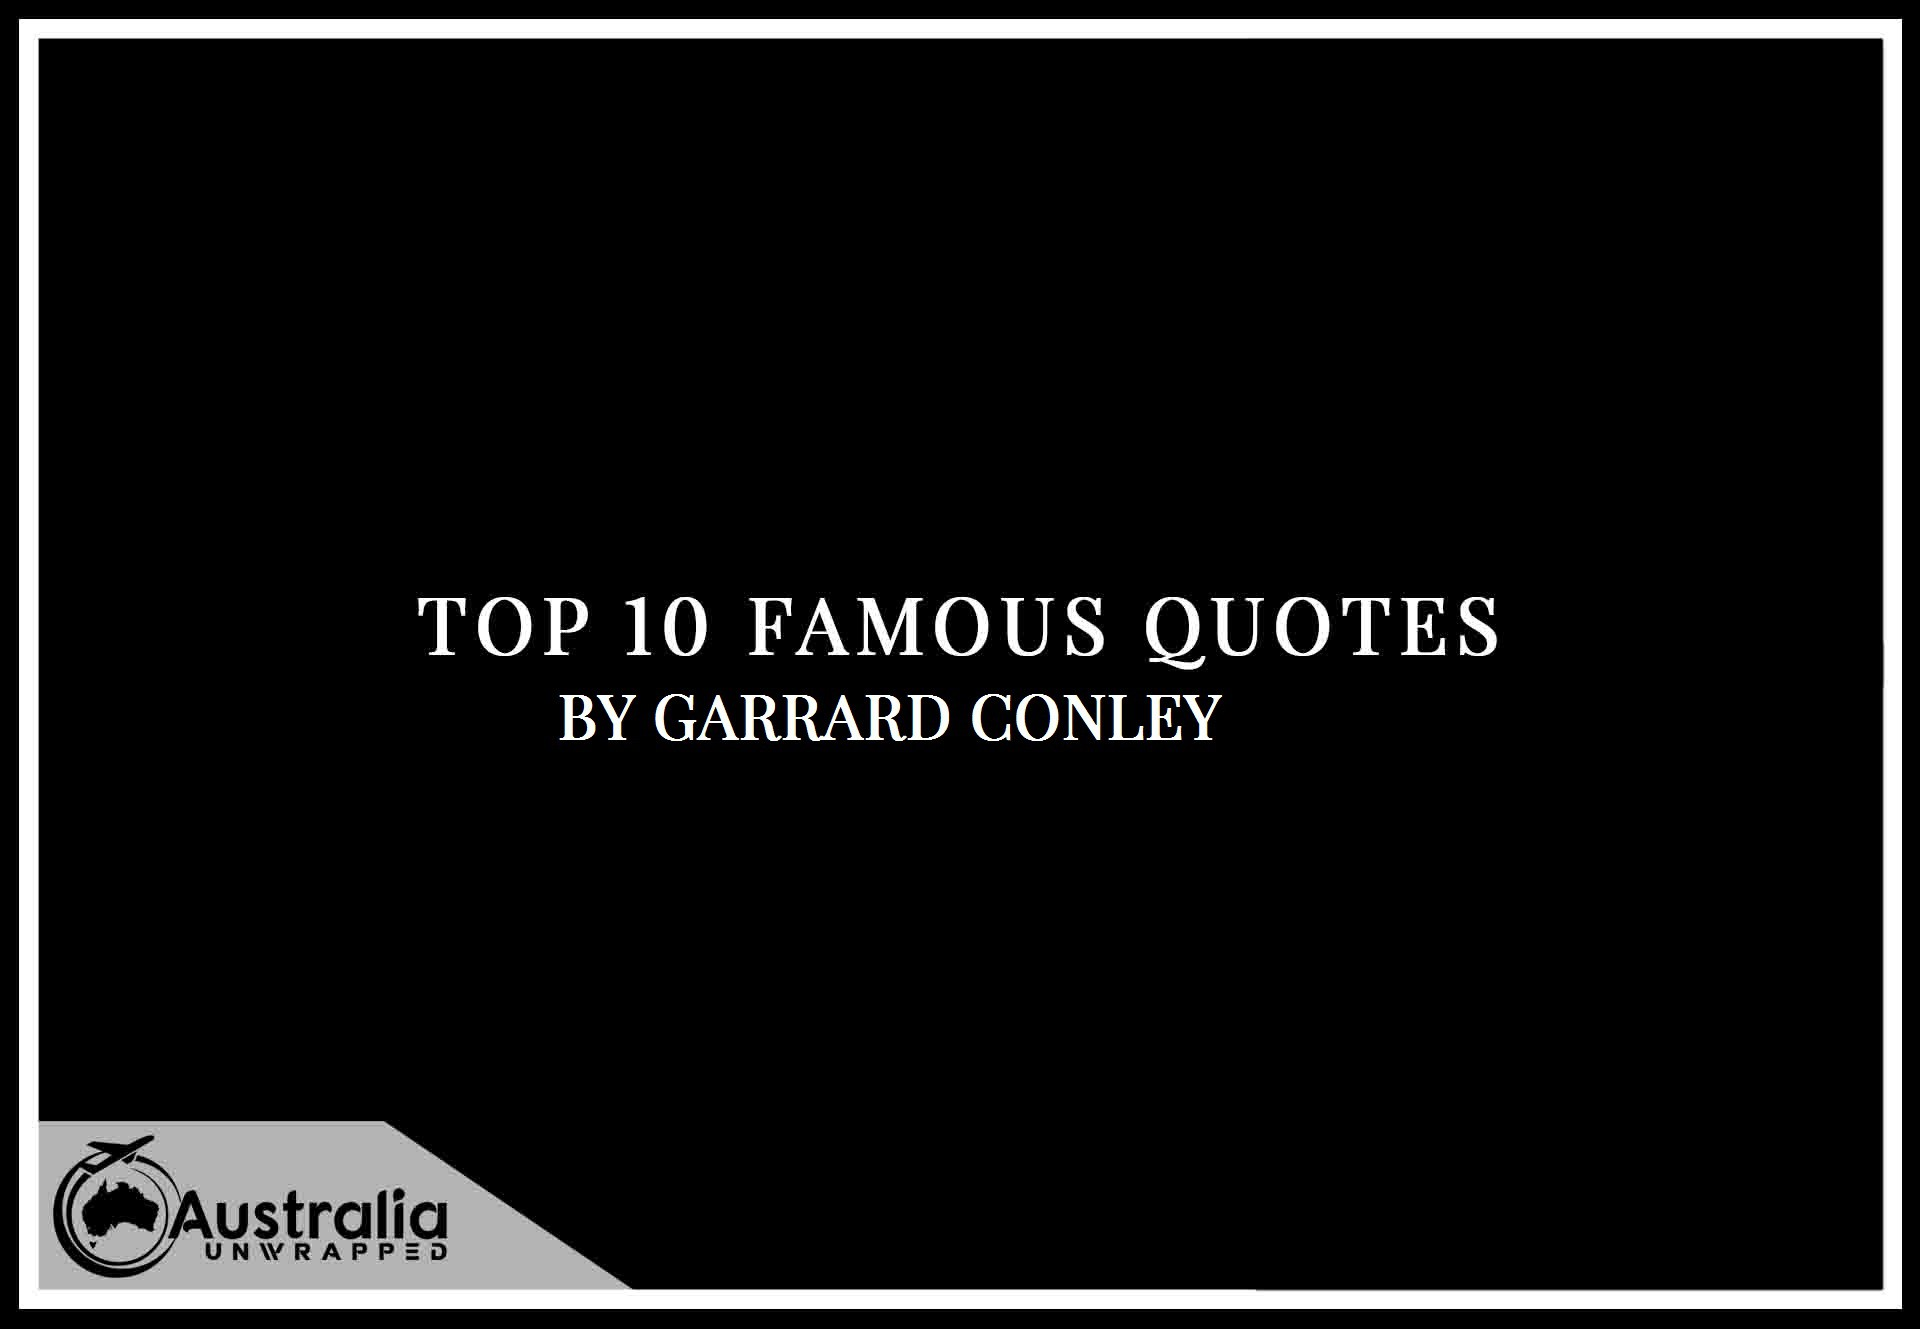 Garrard Conley's Top 10 Popular and Famous Quotes